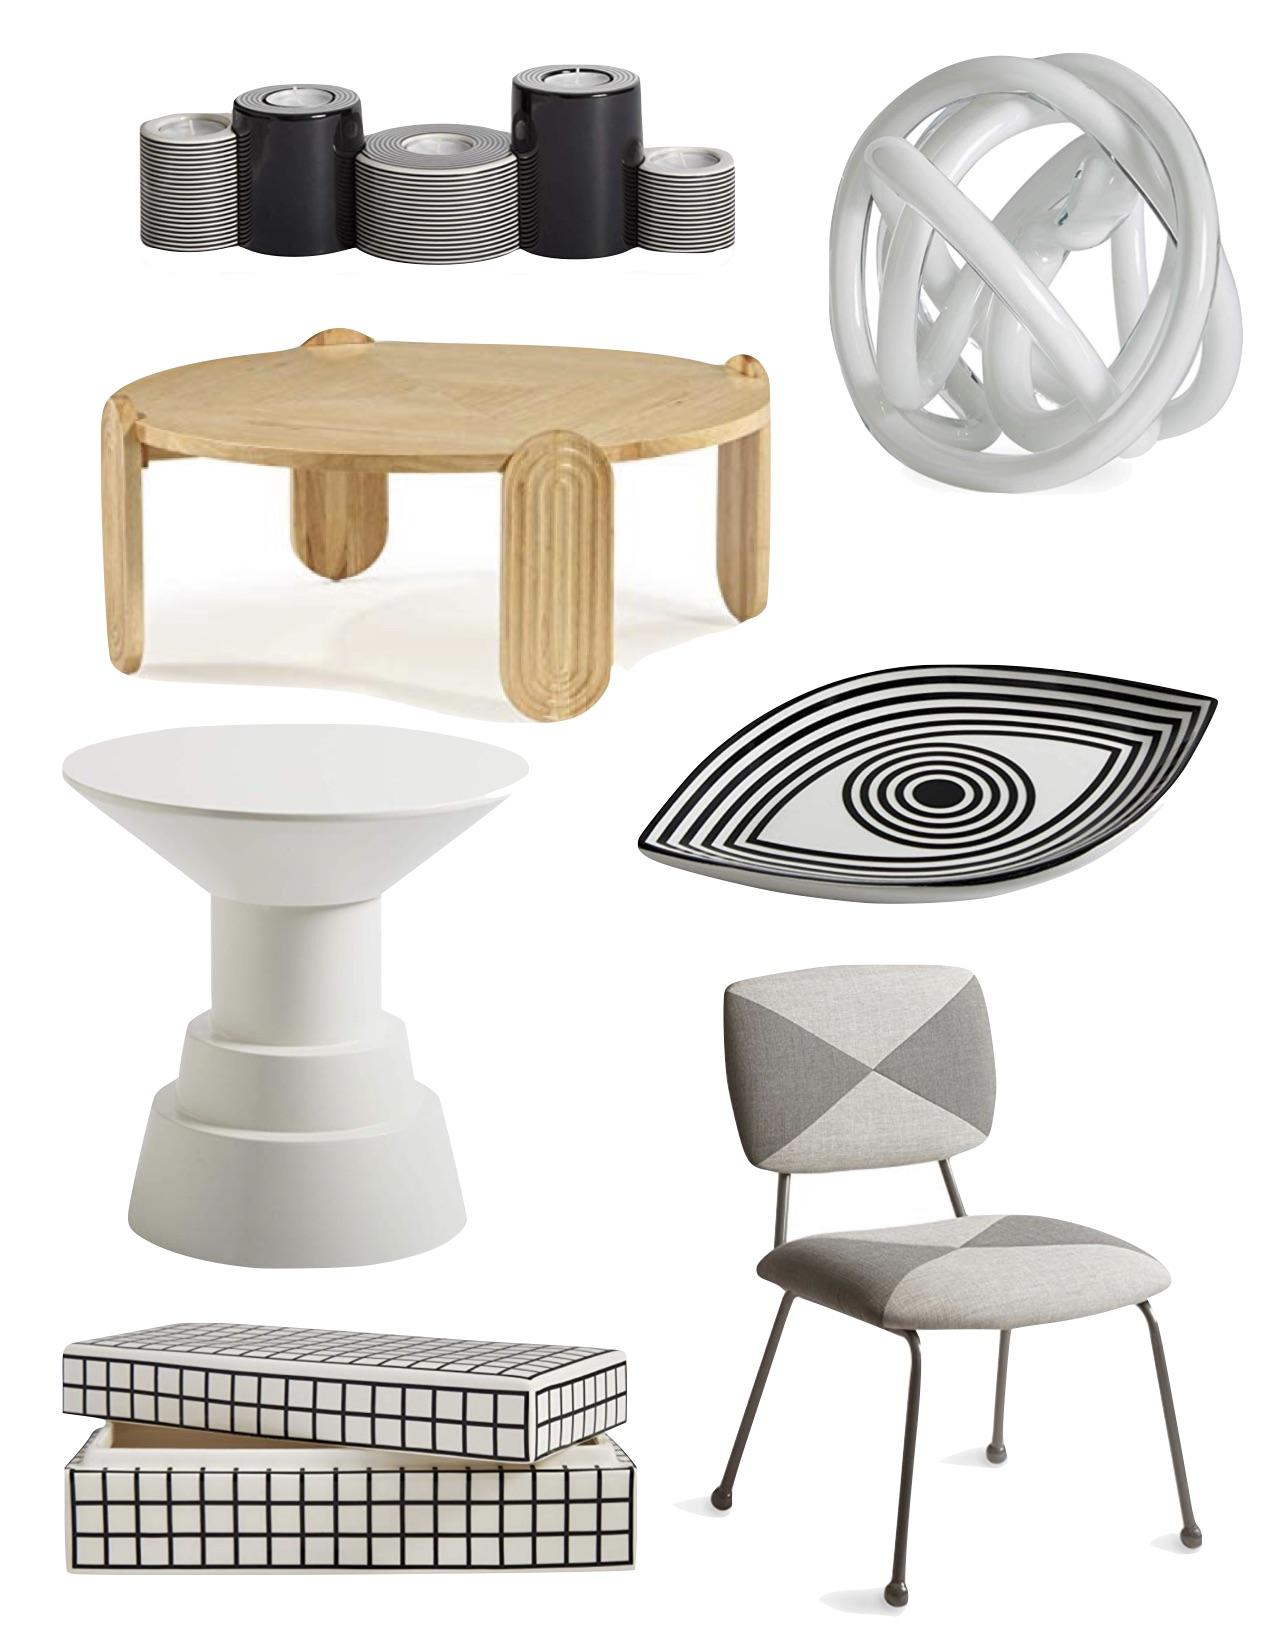 Gray Oak Studio - New House by Jonathan Adler Roundup